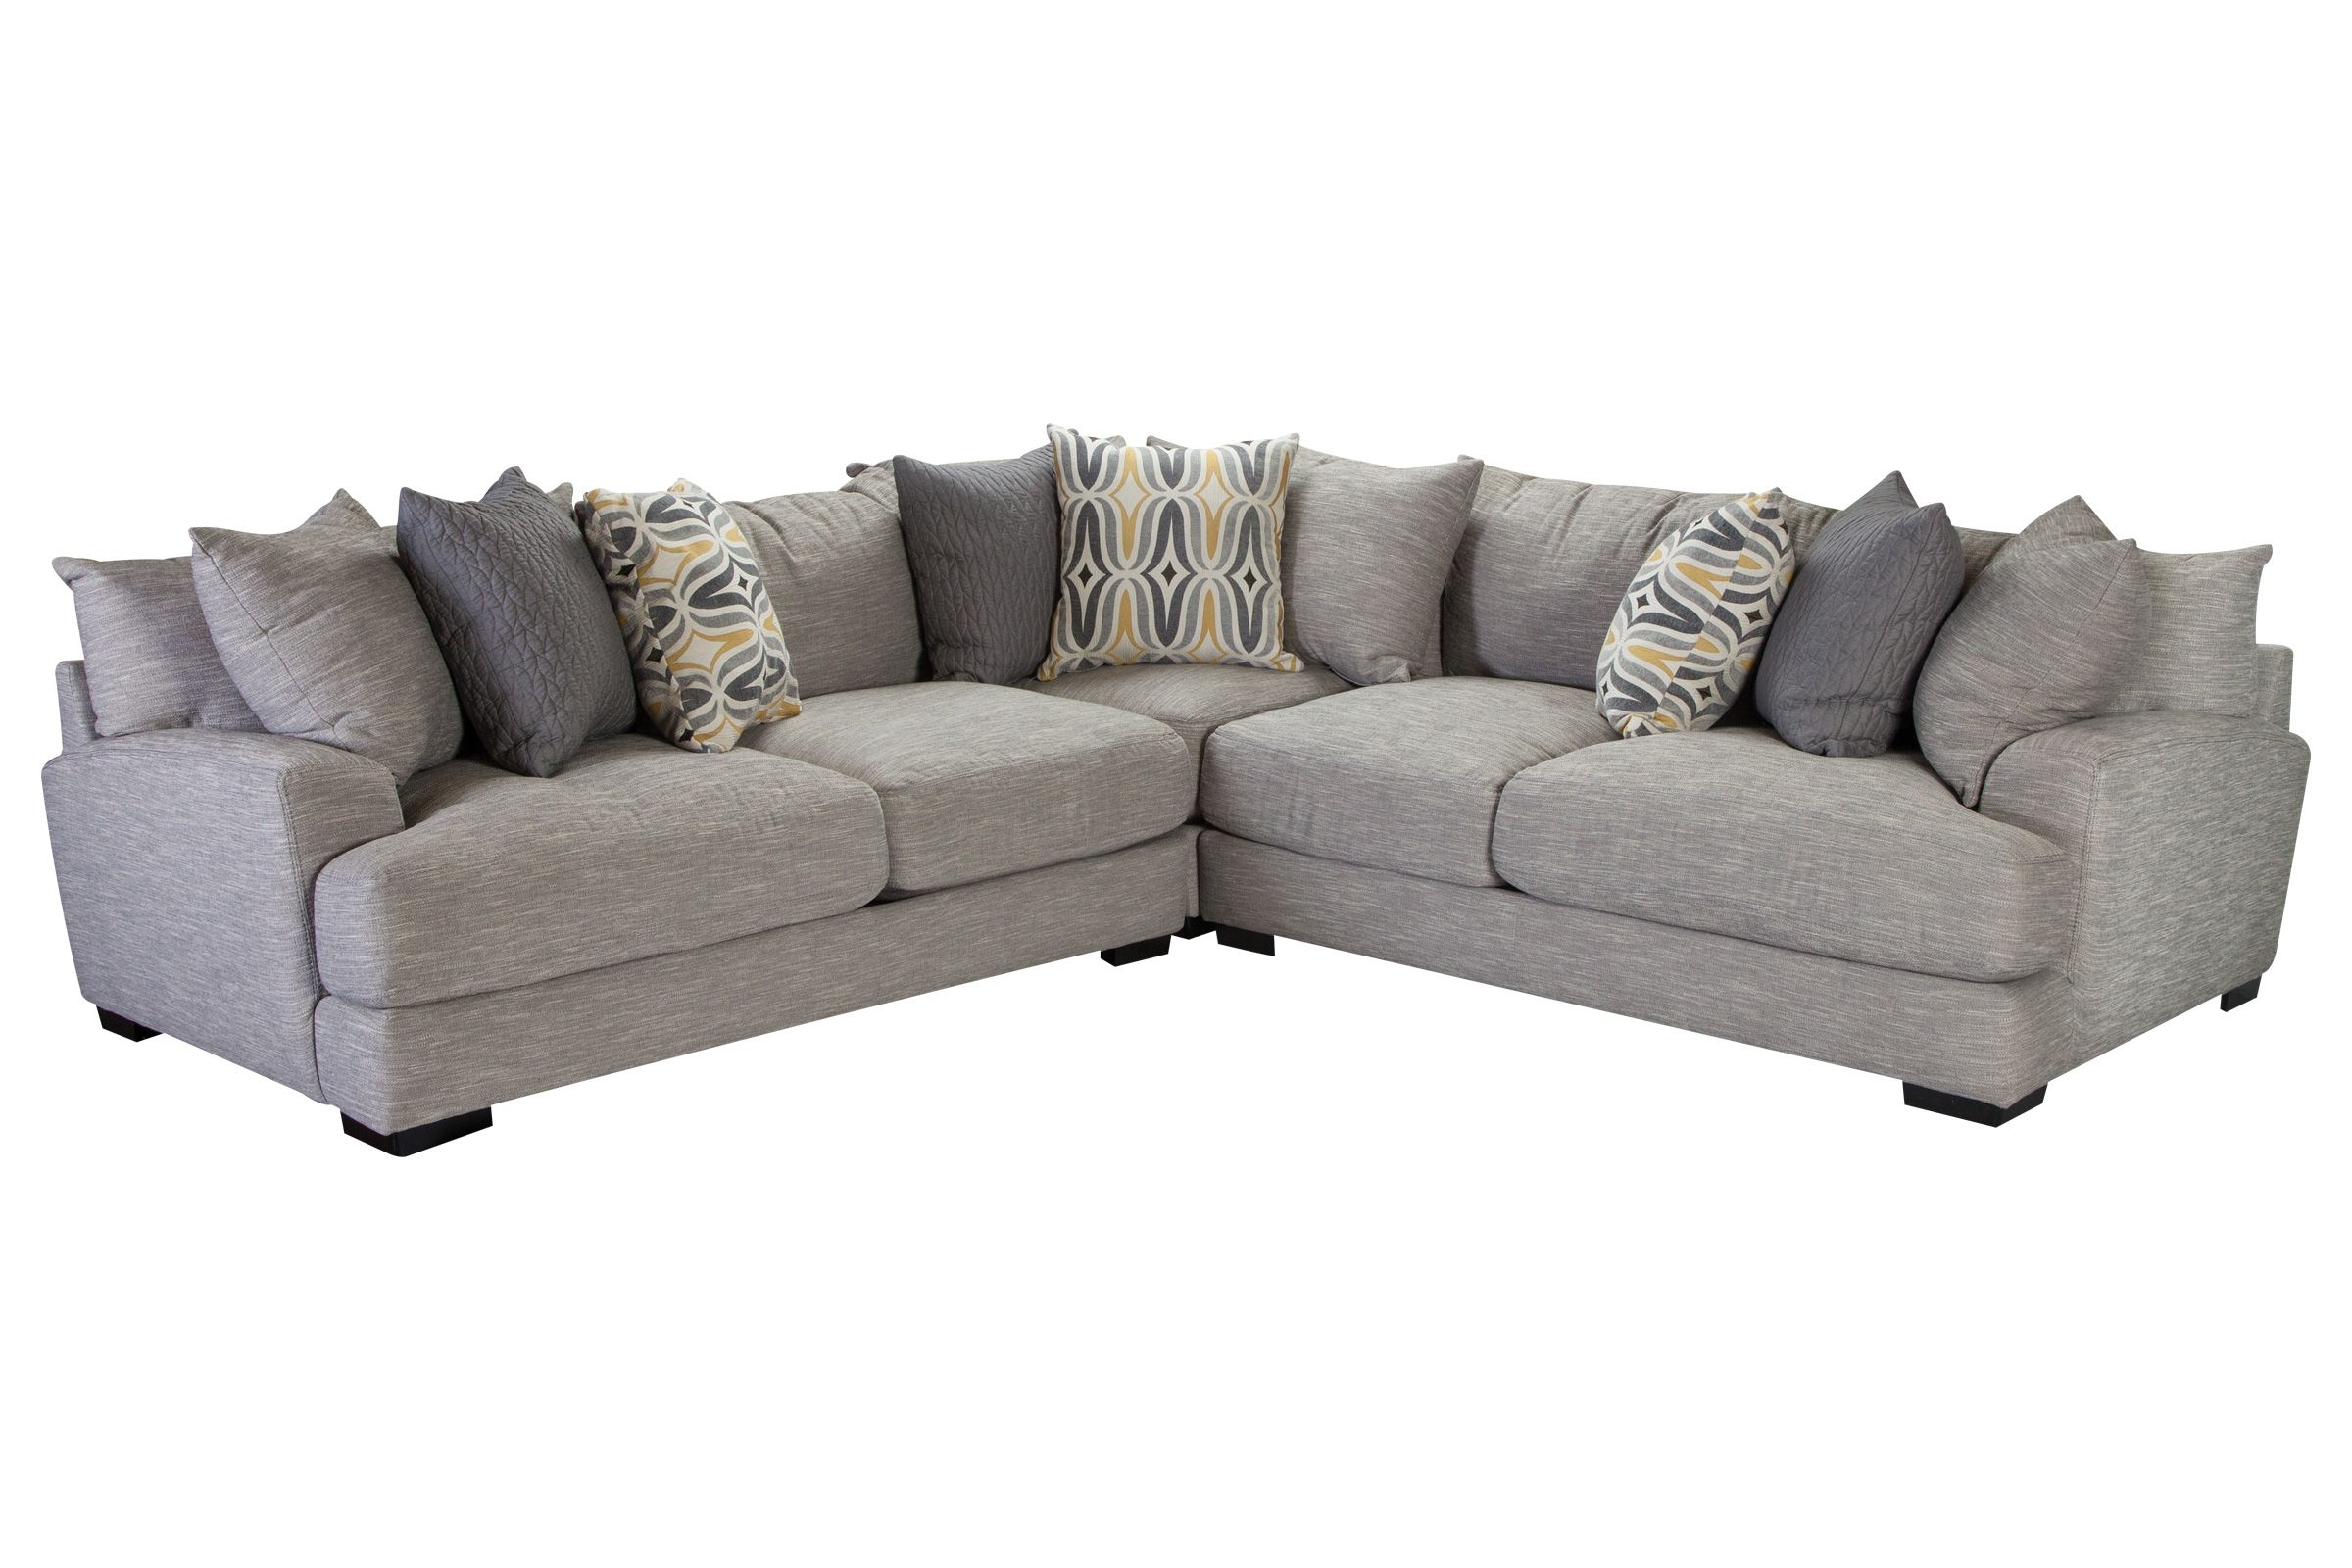 Shop Sectionals At Gardner White Furniture Pertaining To 10 Piece Sectional Sofa (Image 15 of 15)